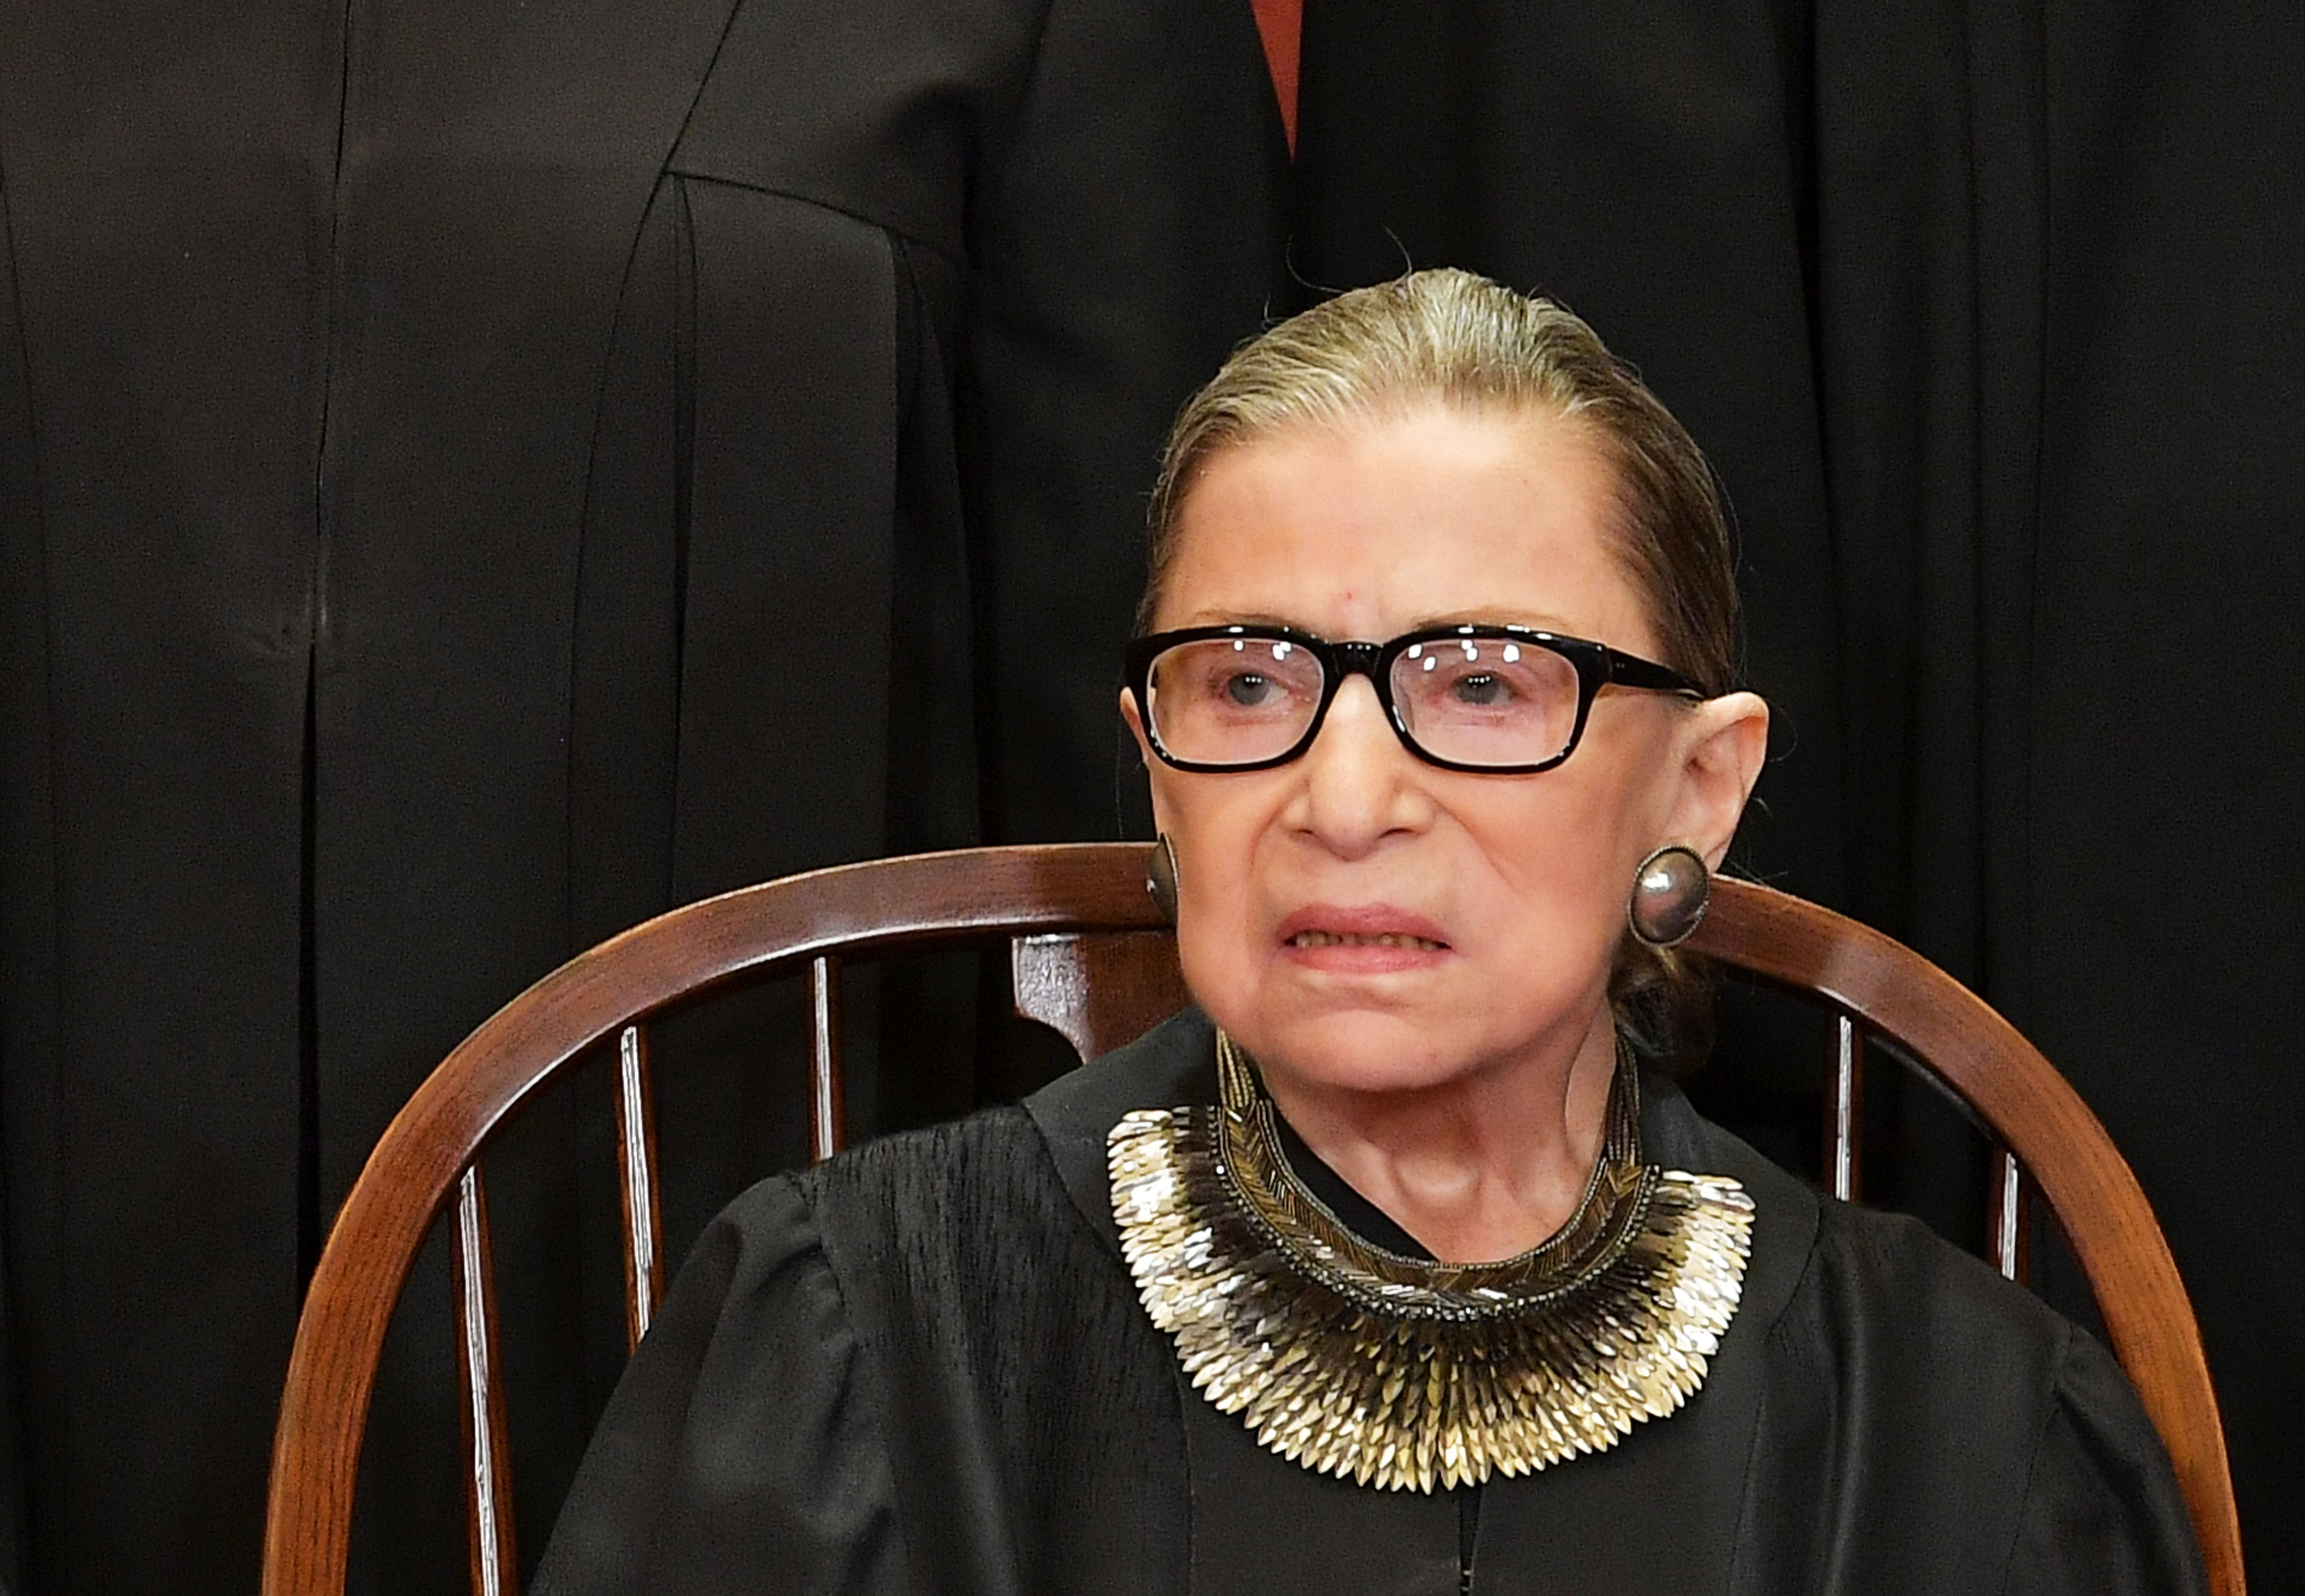 cff78af14 Attention RBG Fans: Banana Republic Is Re-Issuing Its Original ...